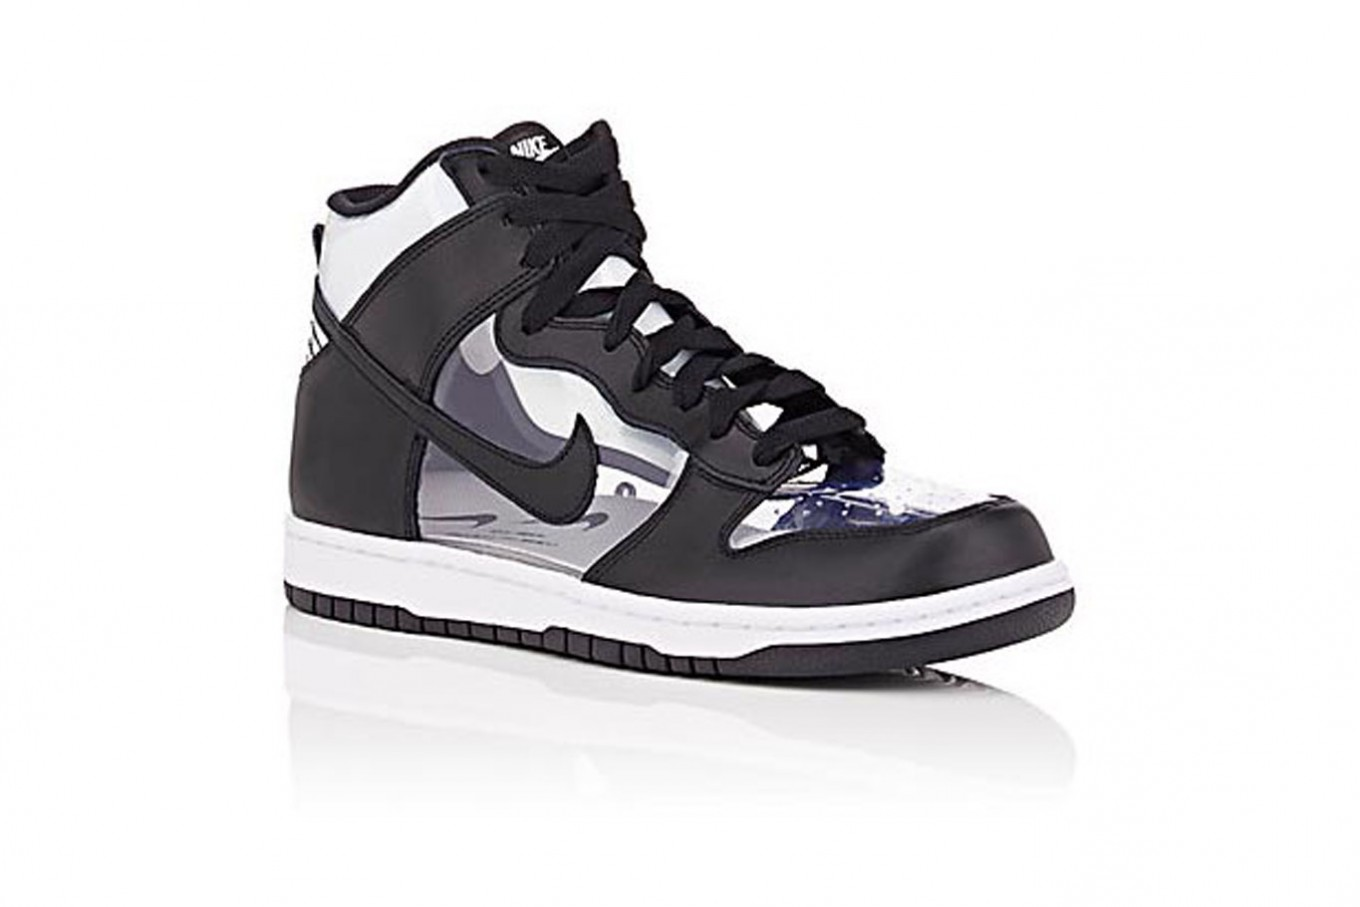 0a9748c6ca3b72 NikeLab x Comme des Garçons Dunk Retro Leather and PVC sneakers ( 320).(Barneys  New York File)